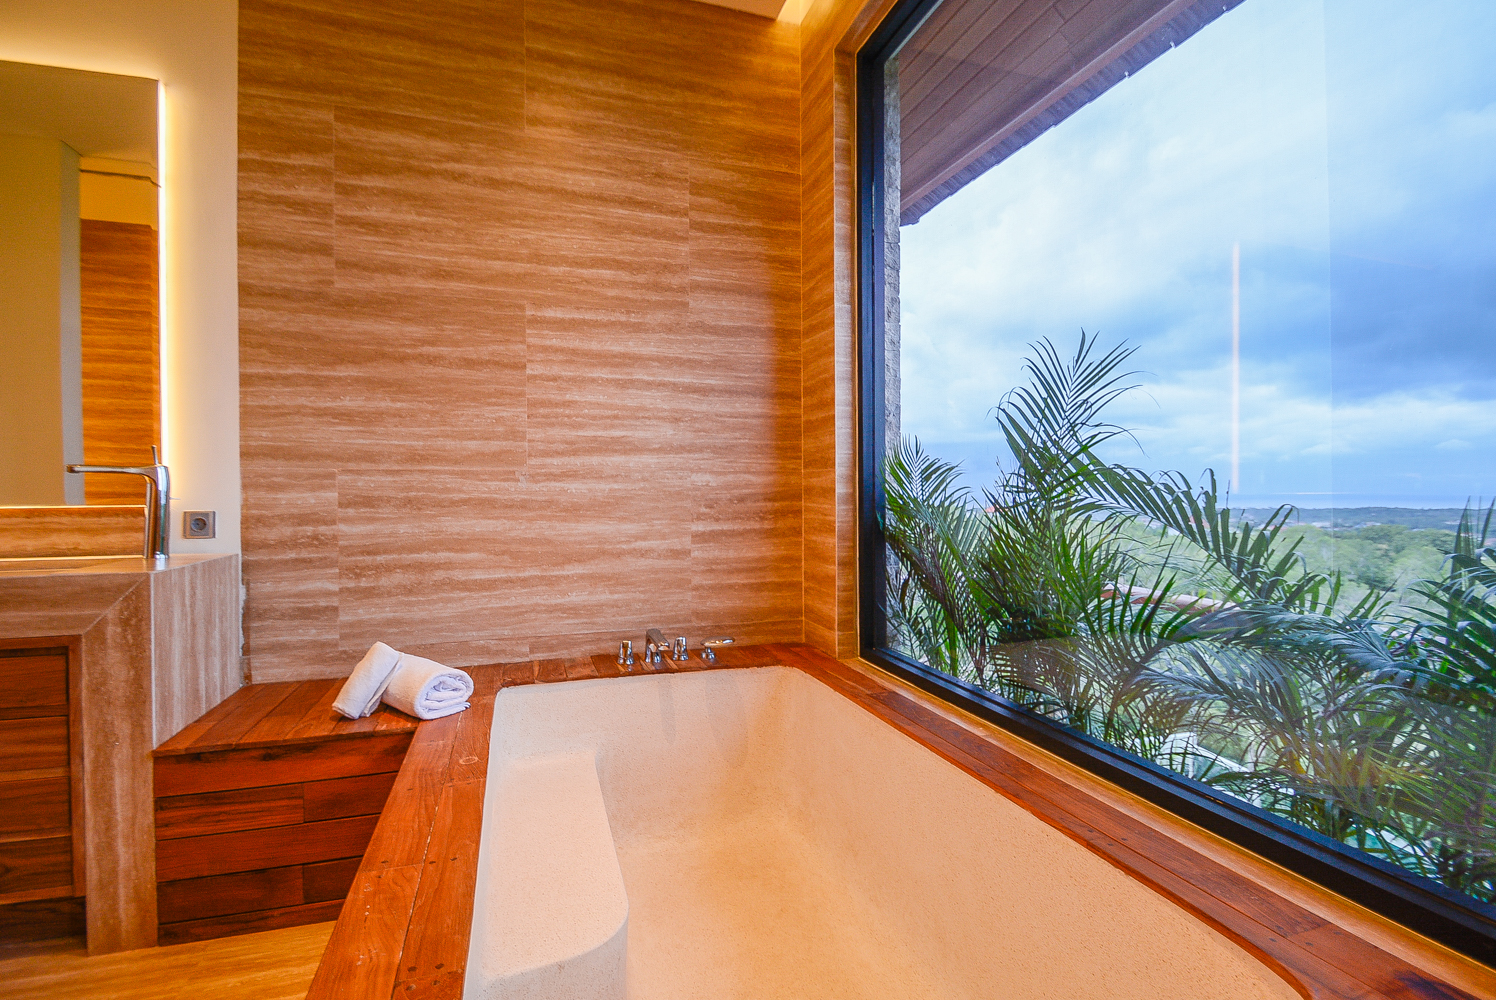 4 bedroom villa bathroom